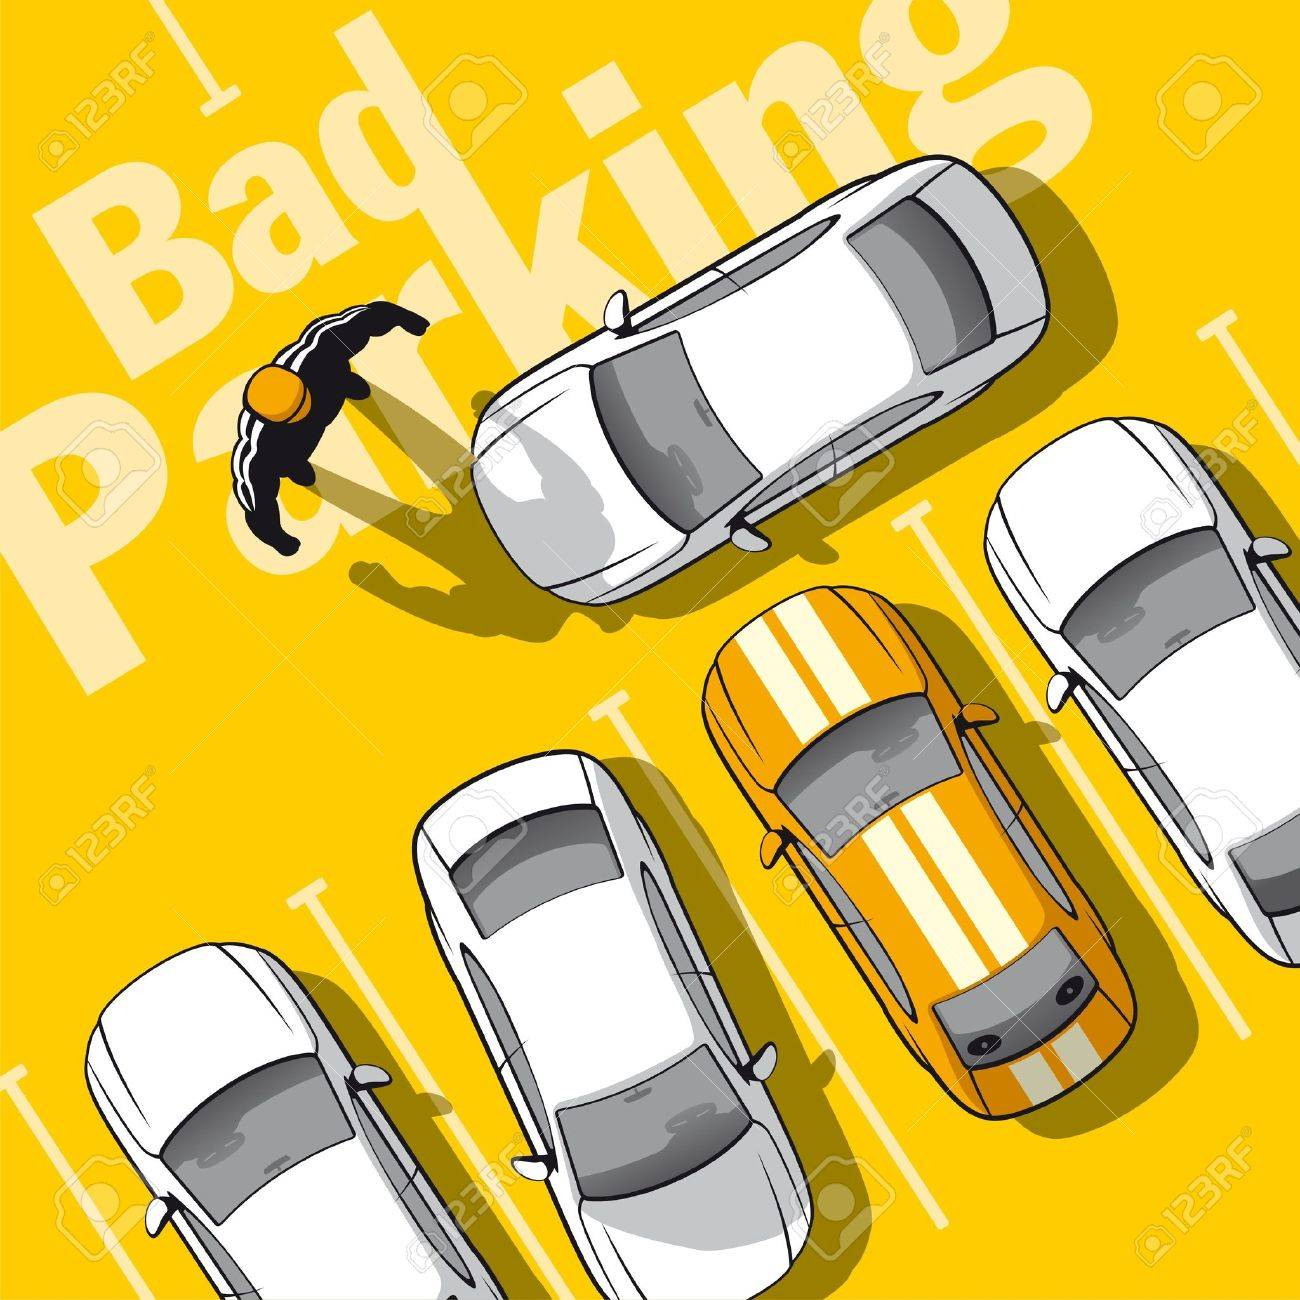 Bad parking. Illustration frustrated owner car that blocked the exit. Stock Vector - 18003019